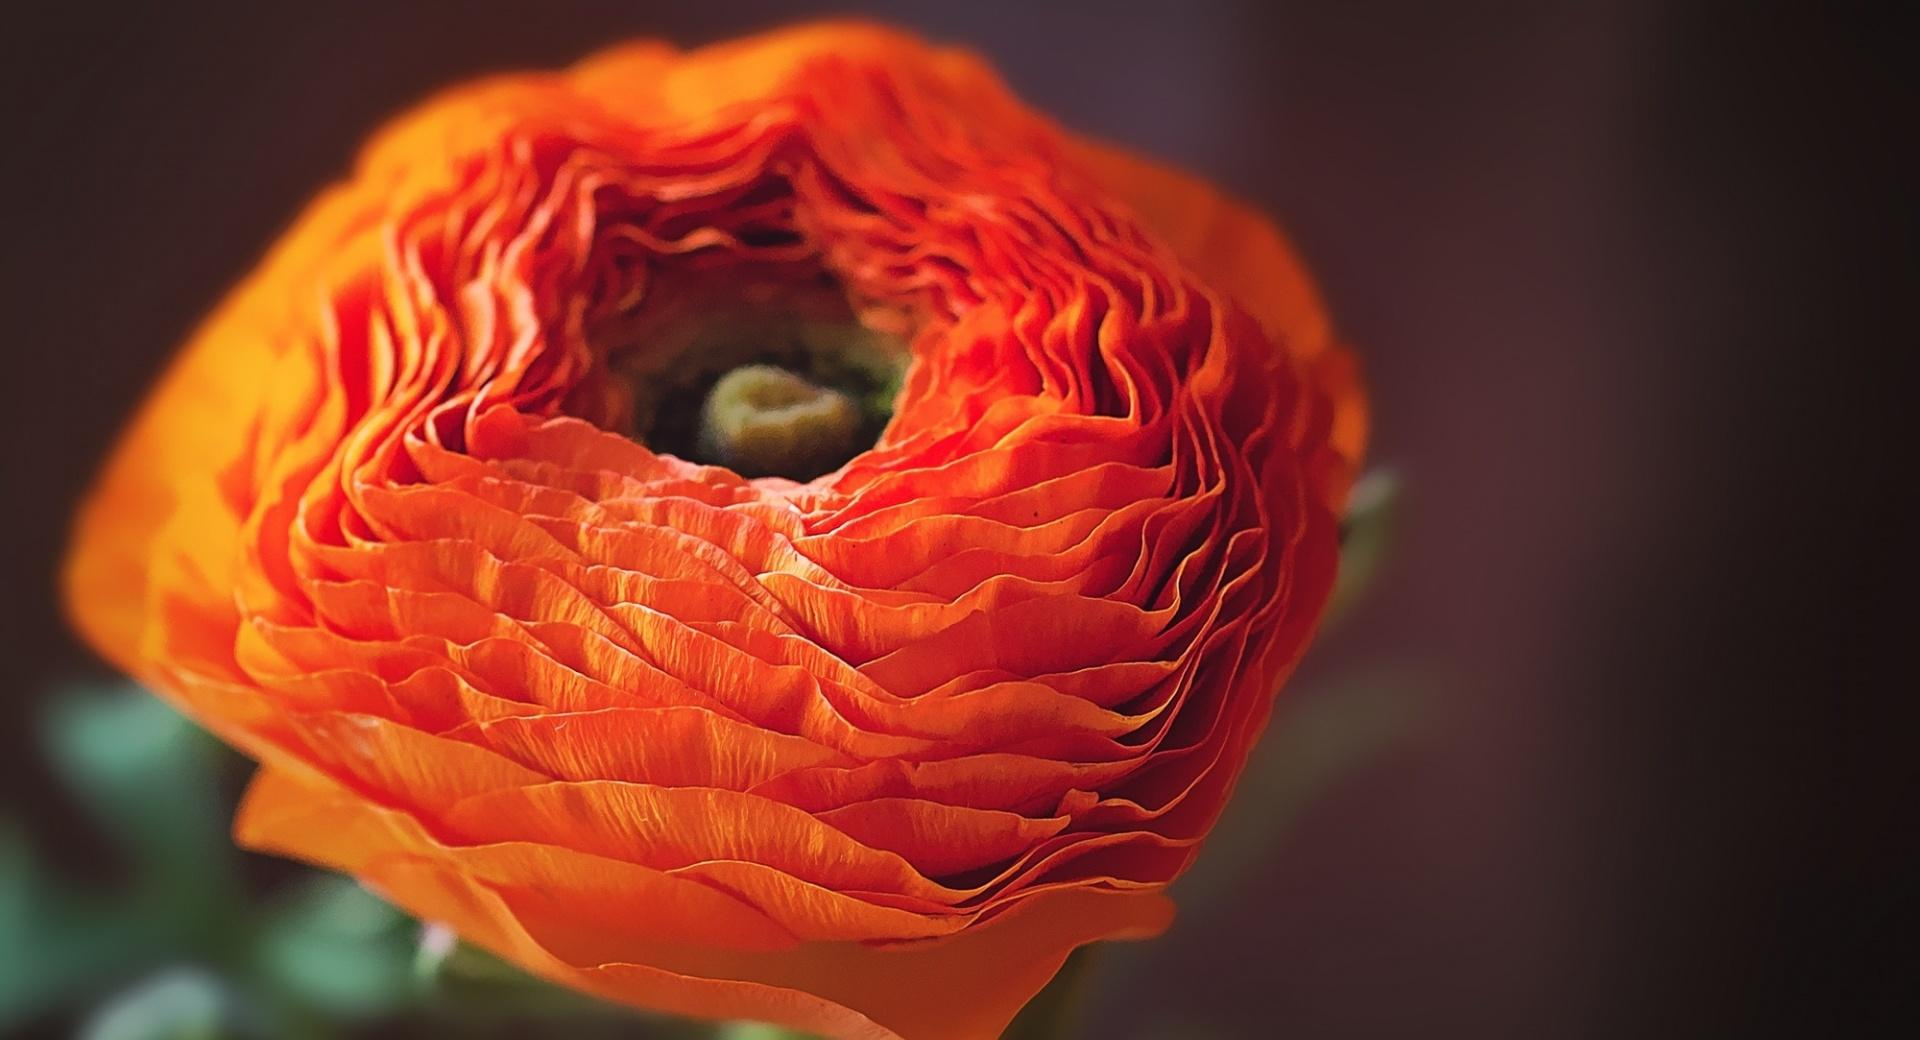 Orange Persian Buttercup Flower wallpapers HD quality